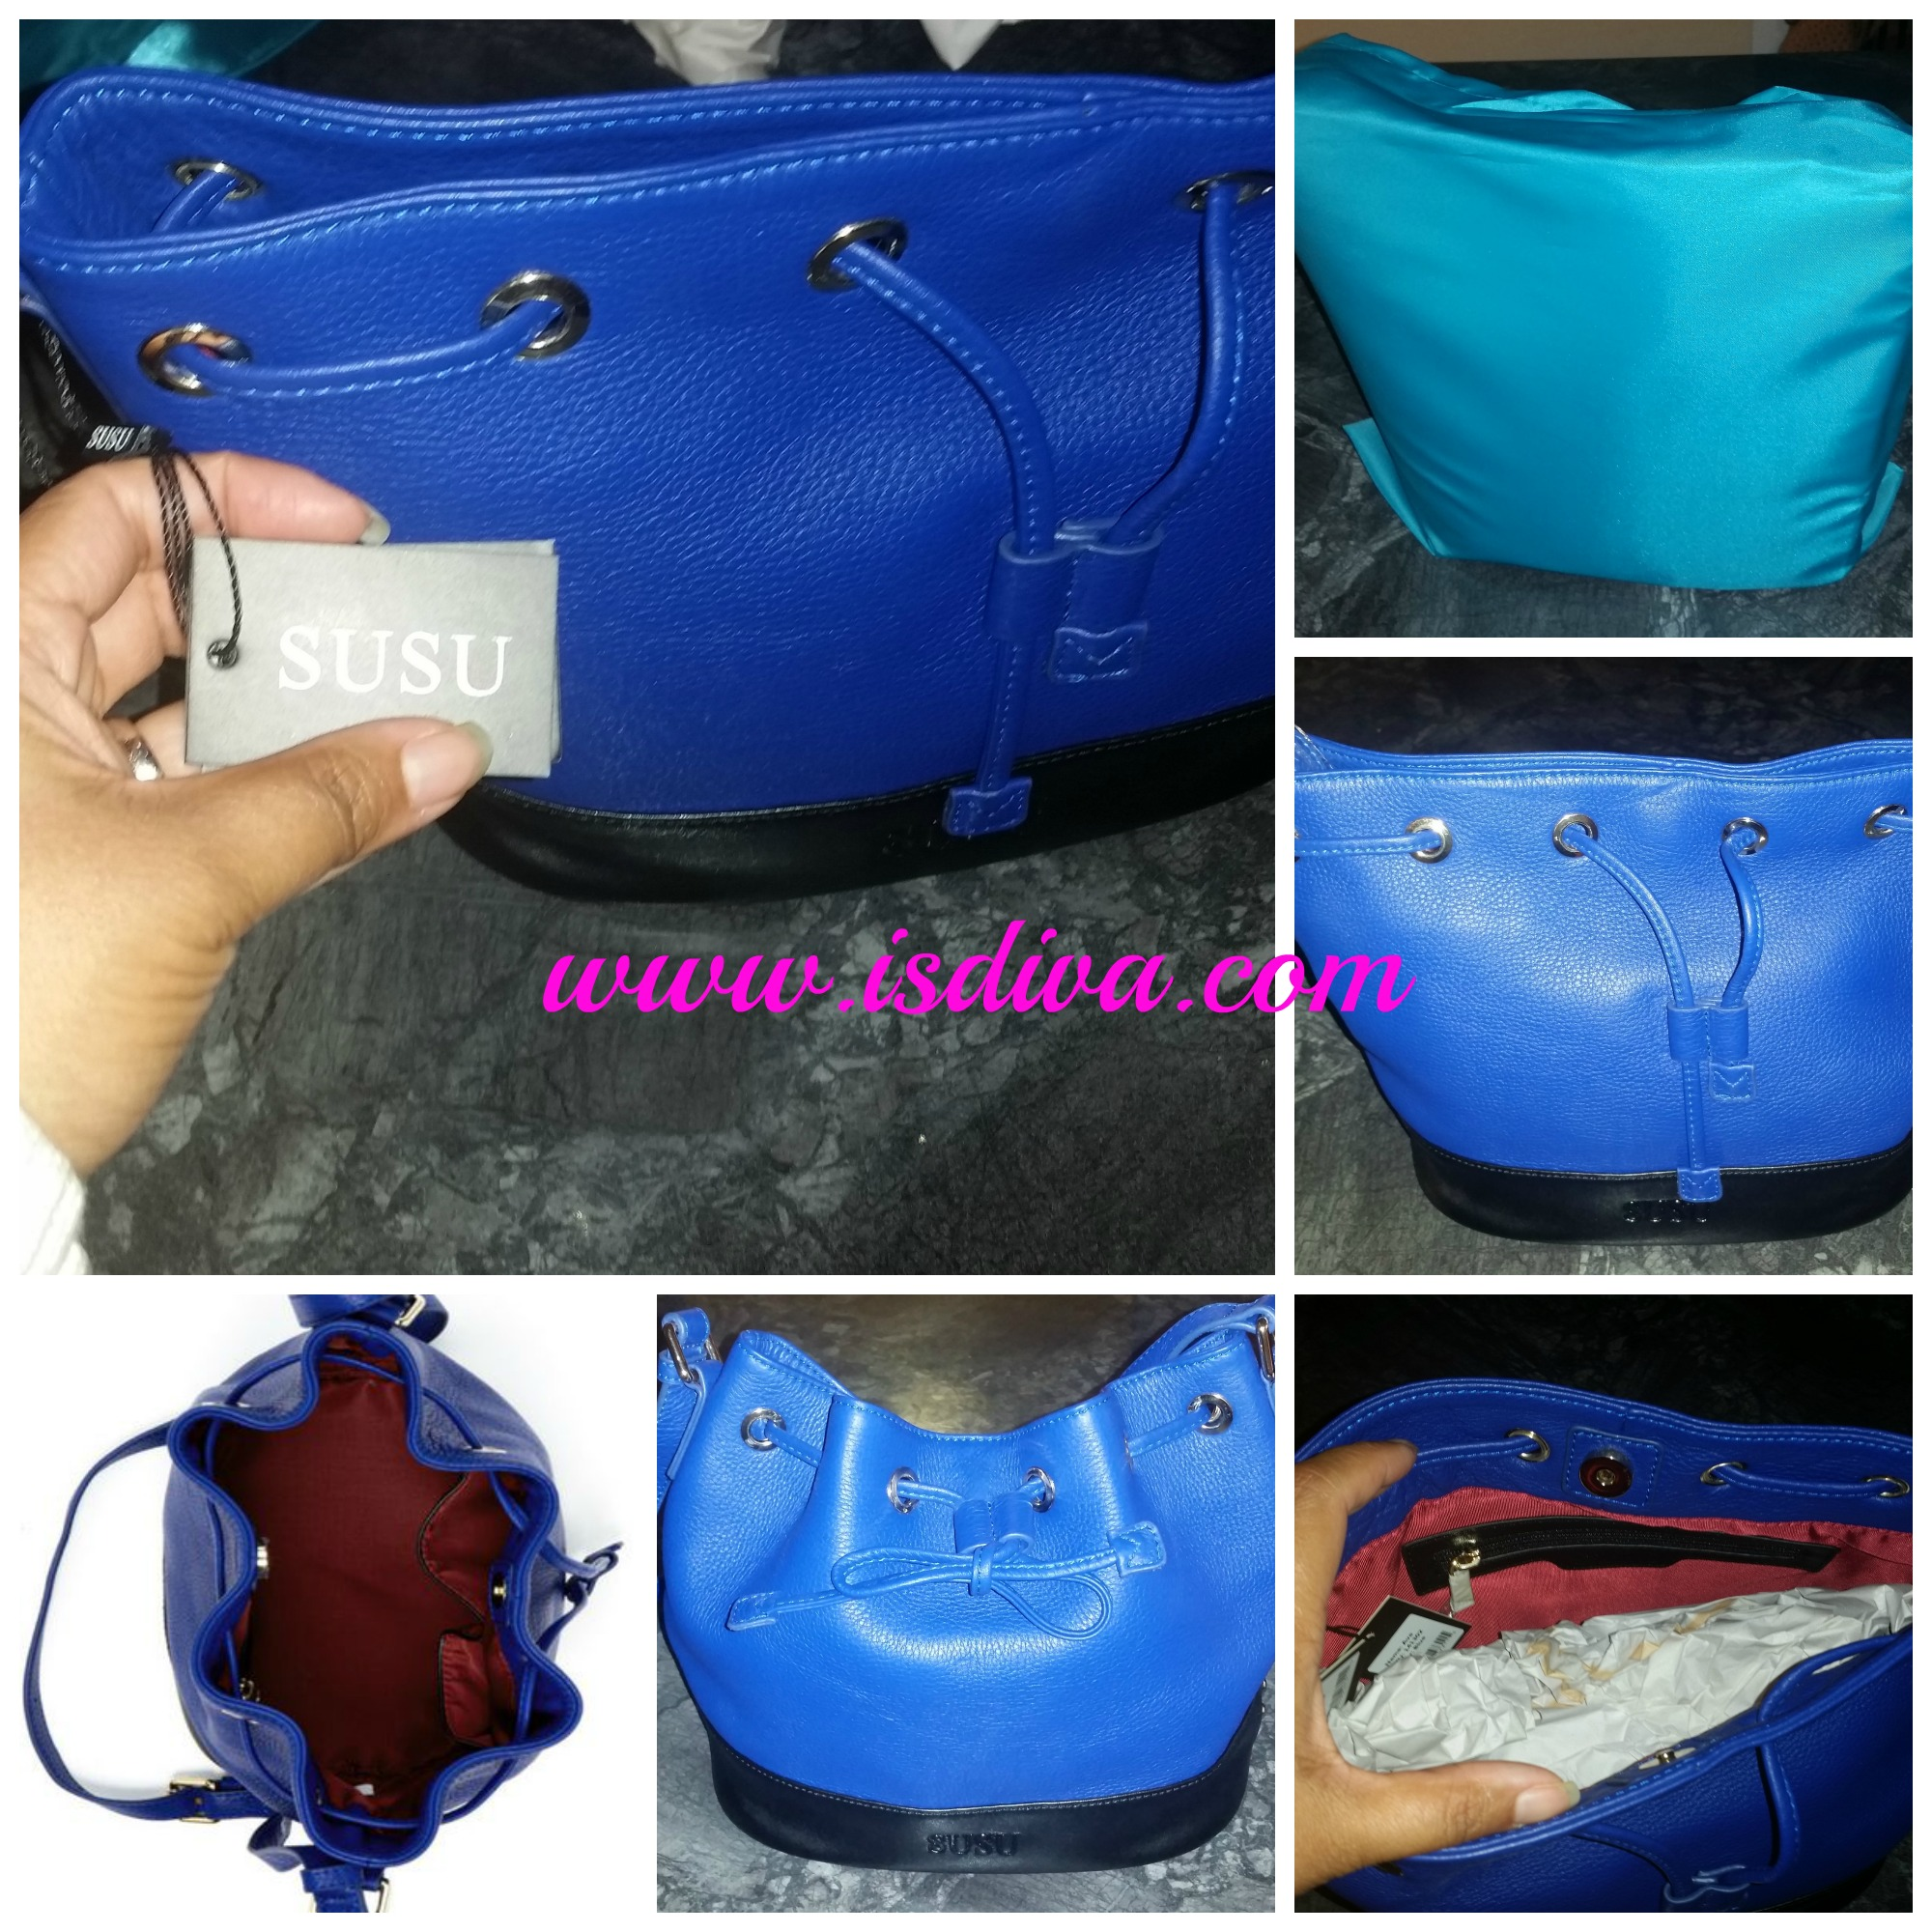 Fabulous SUSU Purse Review & Giveaway Total Package